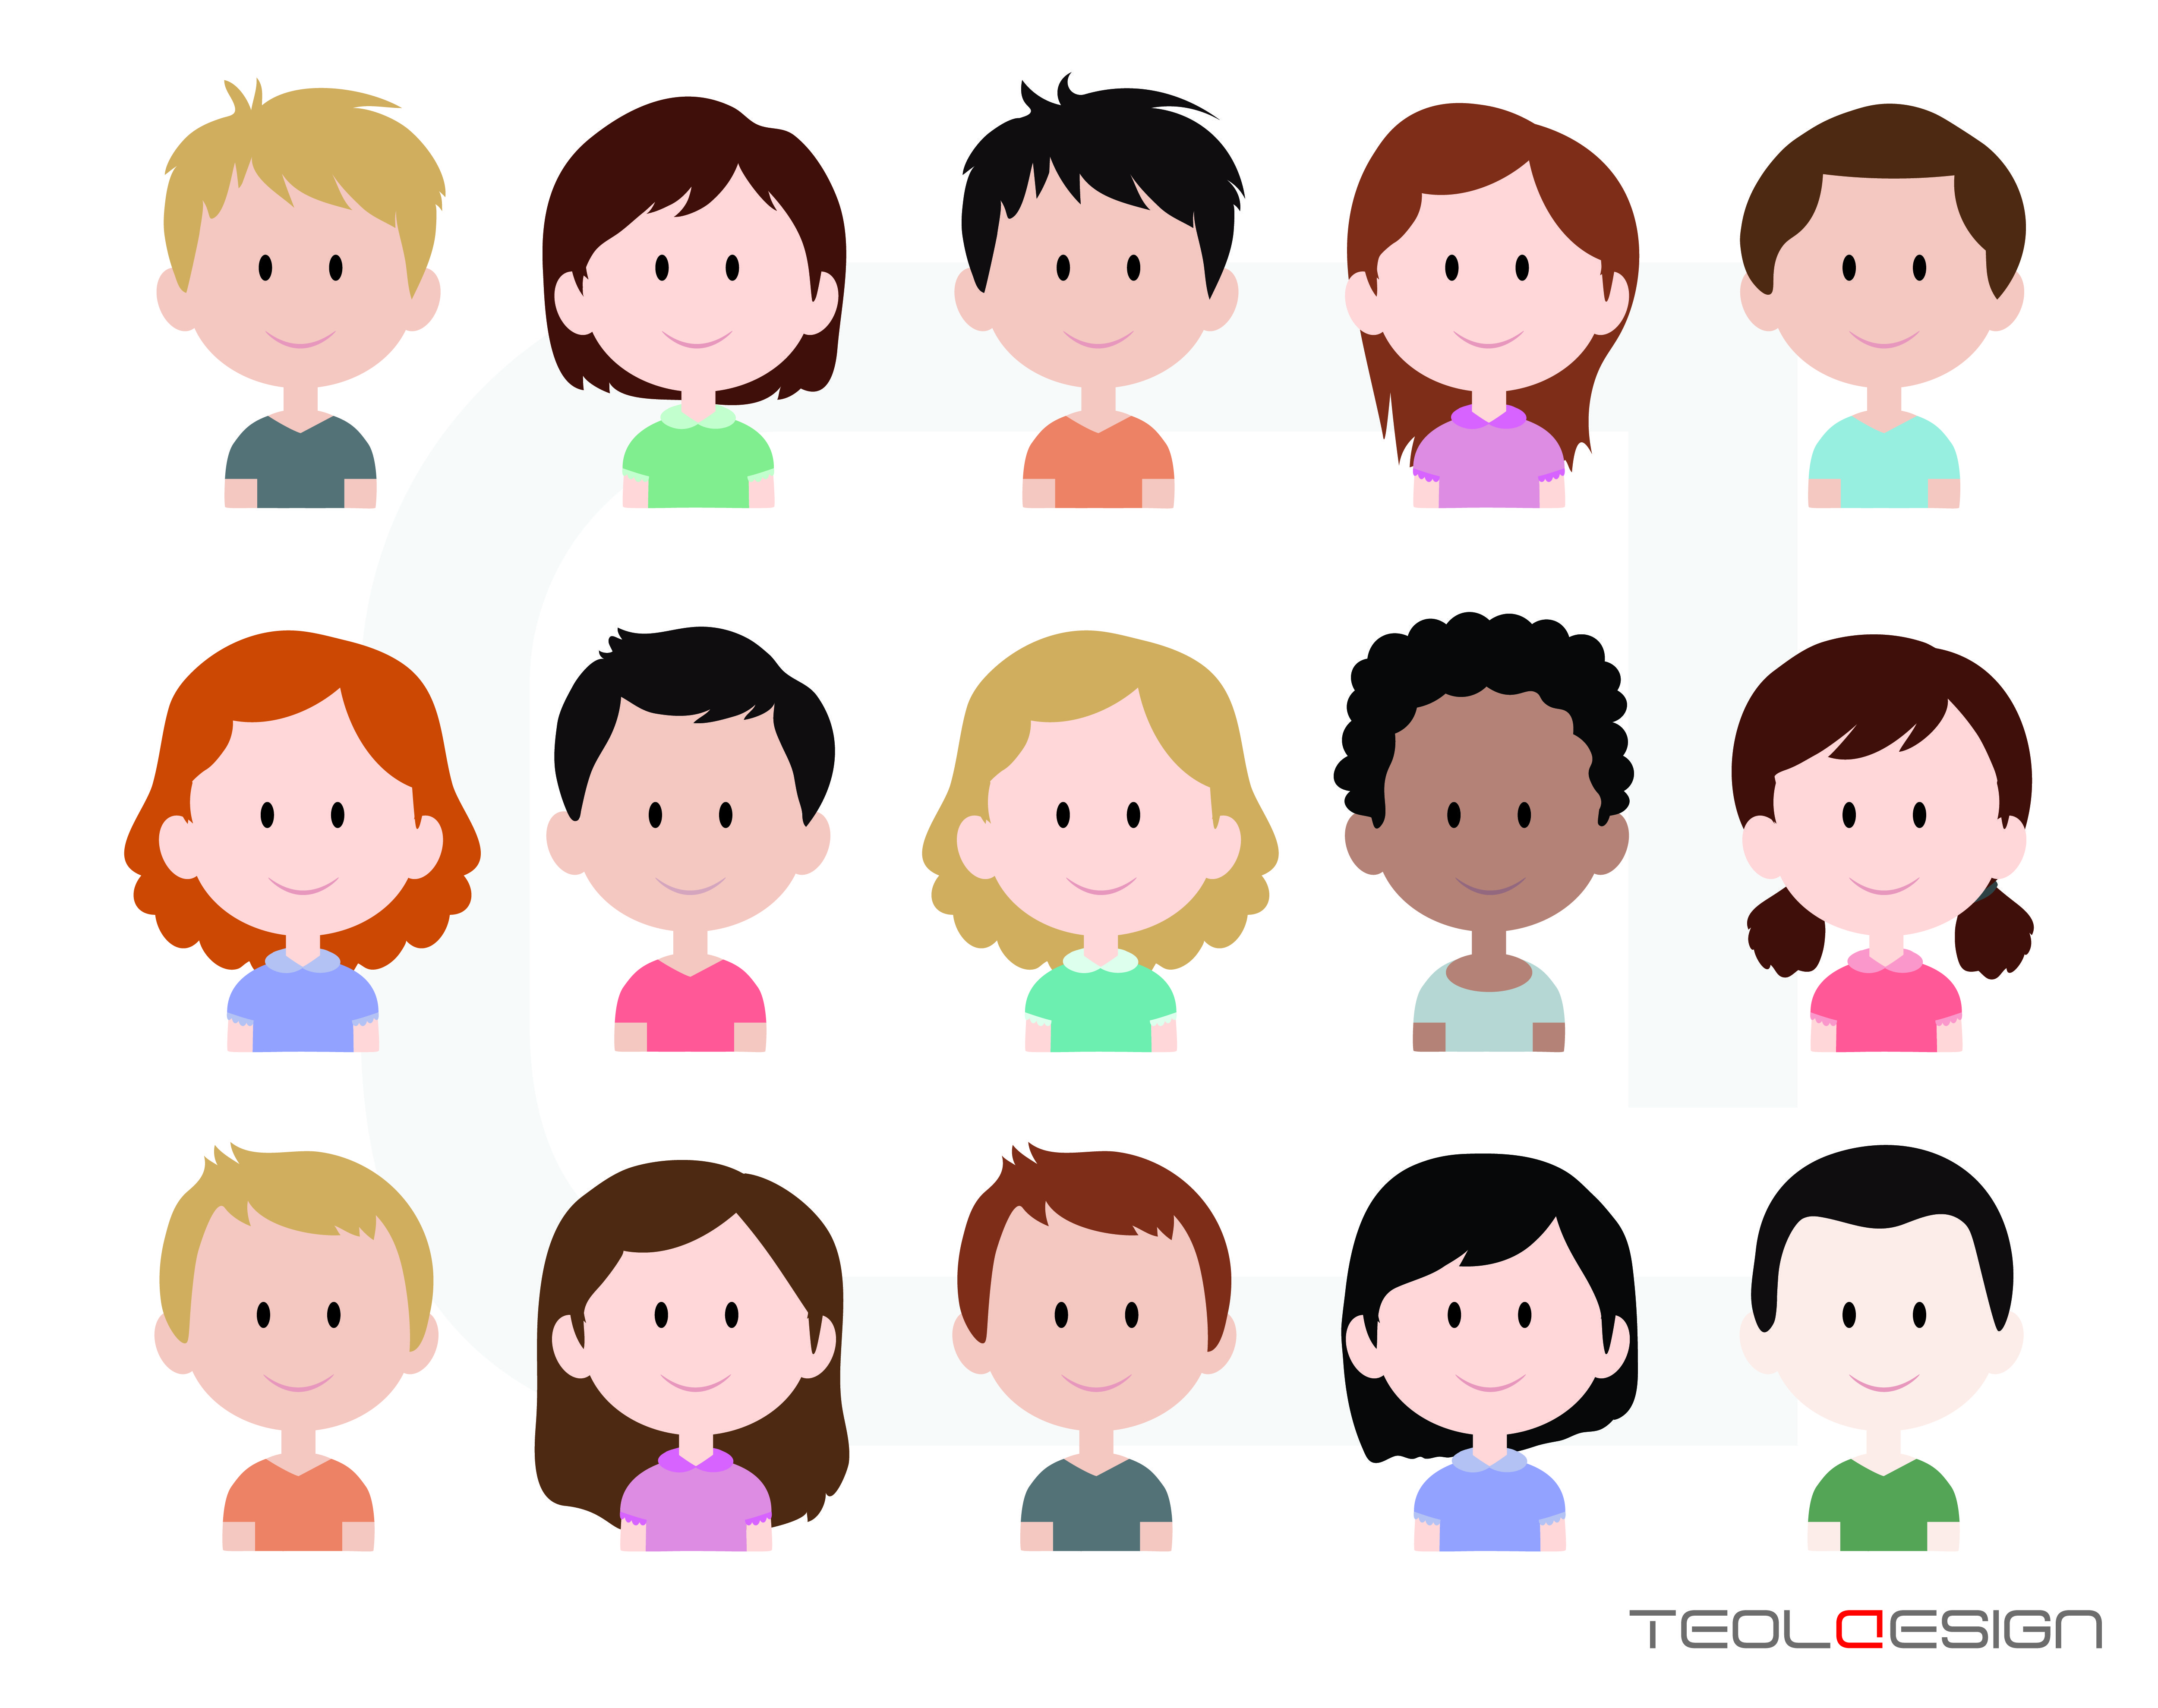 5000x3958 Eps Svg Png Cute Baby And Children Faces, Avatar, Icon, Digital